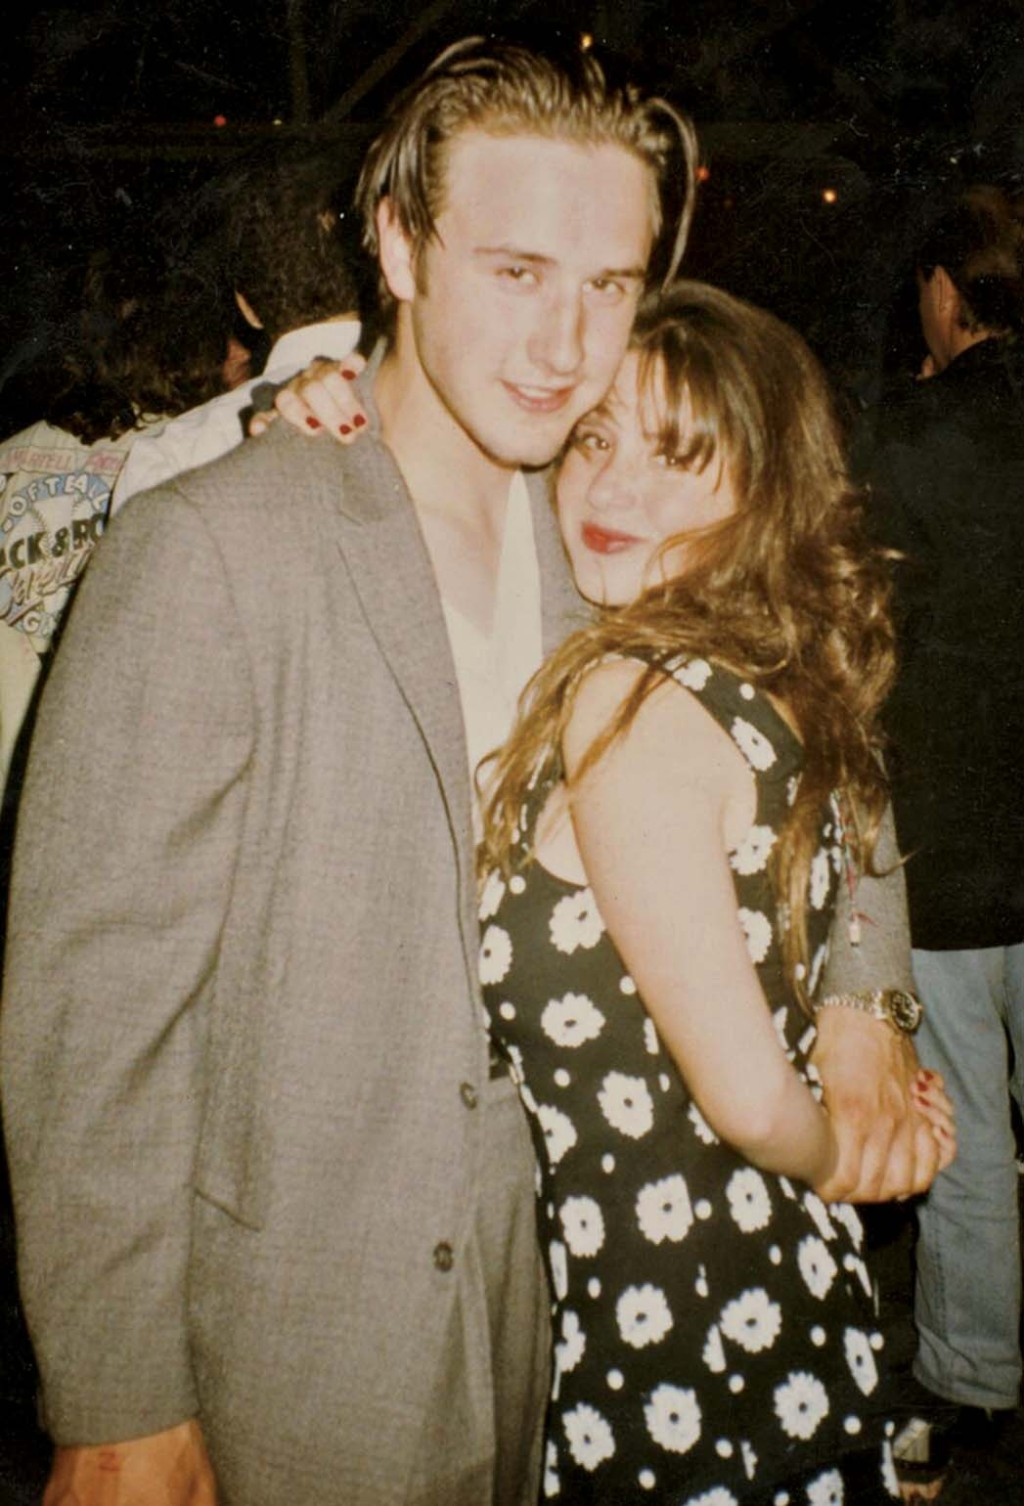 With David Arquette in the '90s.